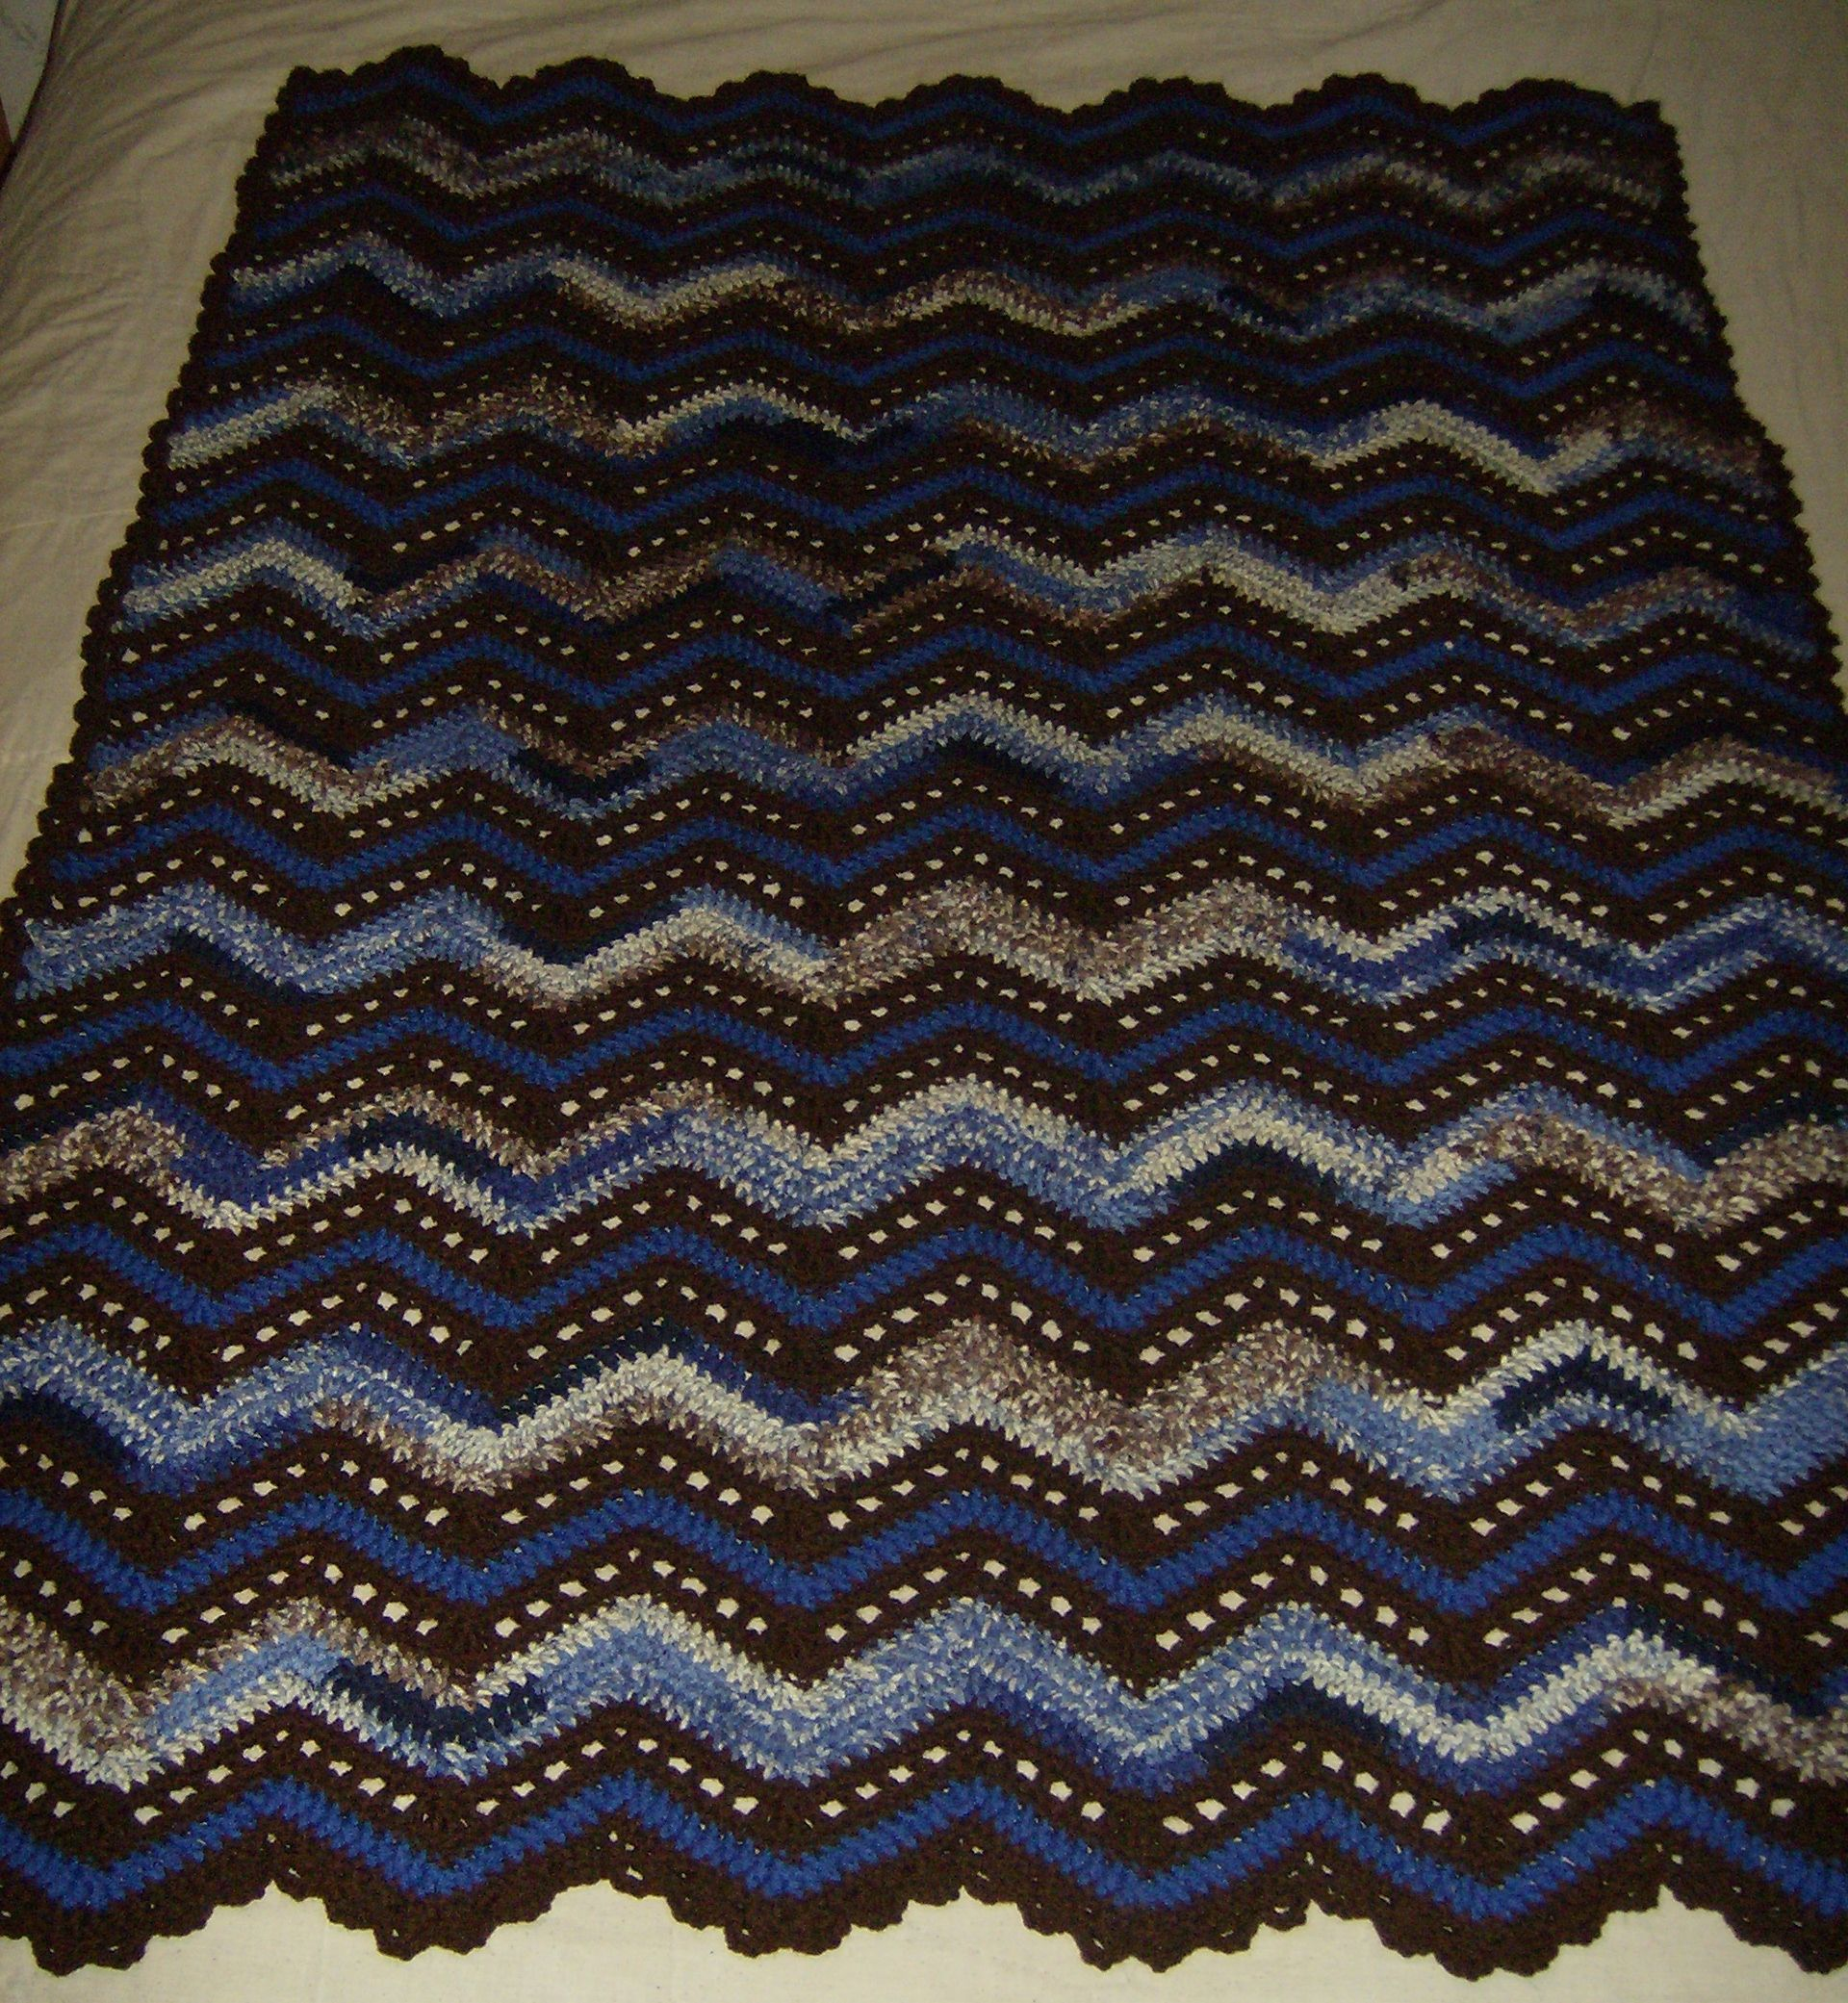 Playful Ripples Throw Crochet Afghan http://www.redheart.com/free ...